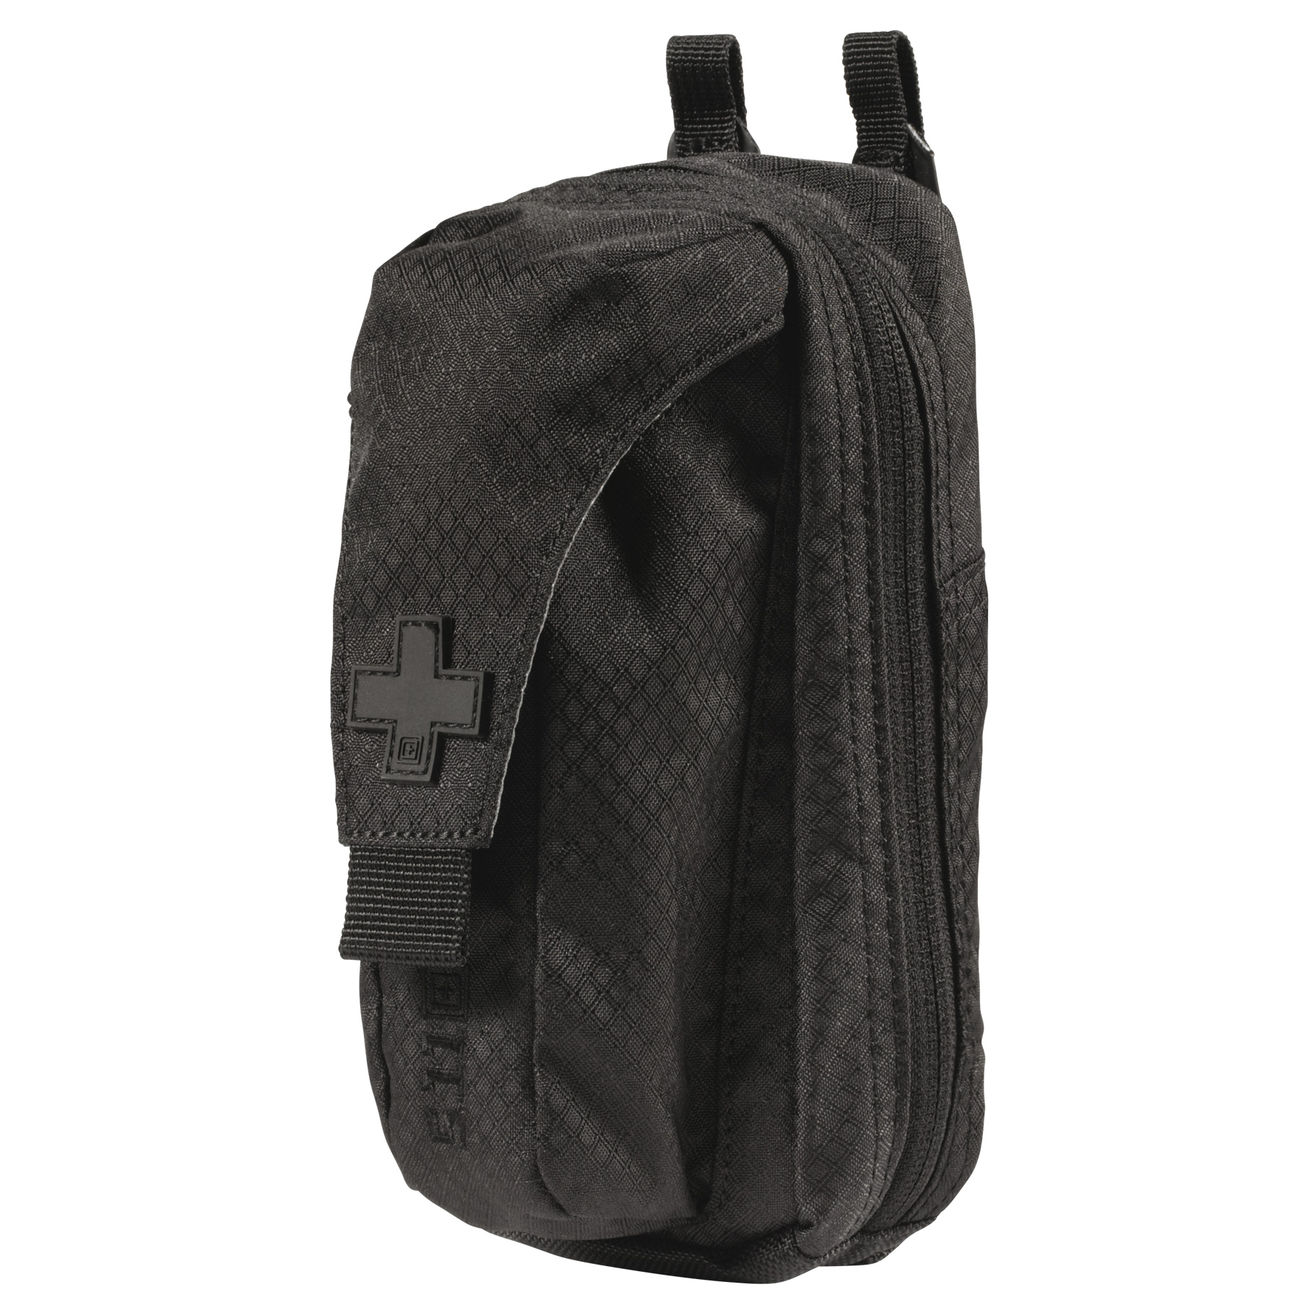 5.11 Ignitor Med Pouch schwarz 0